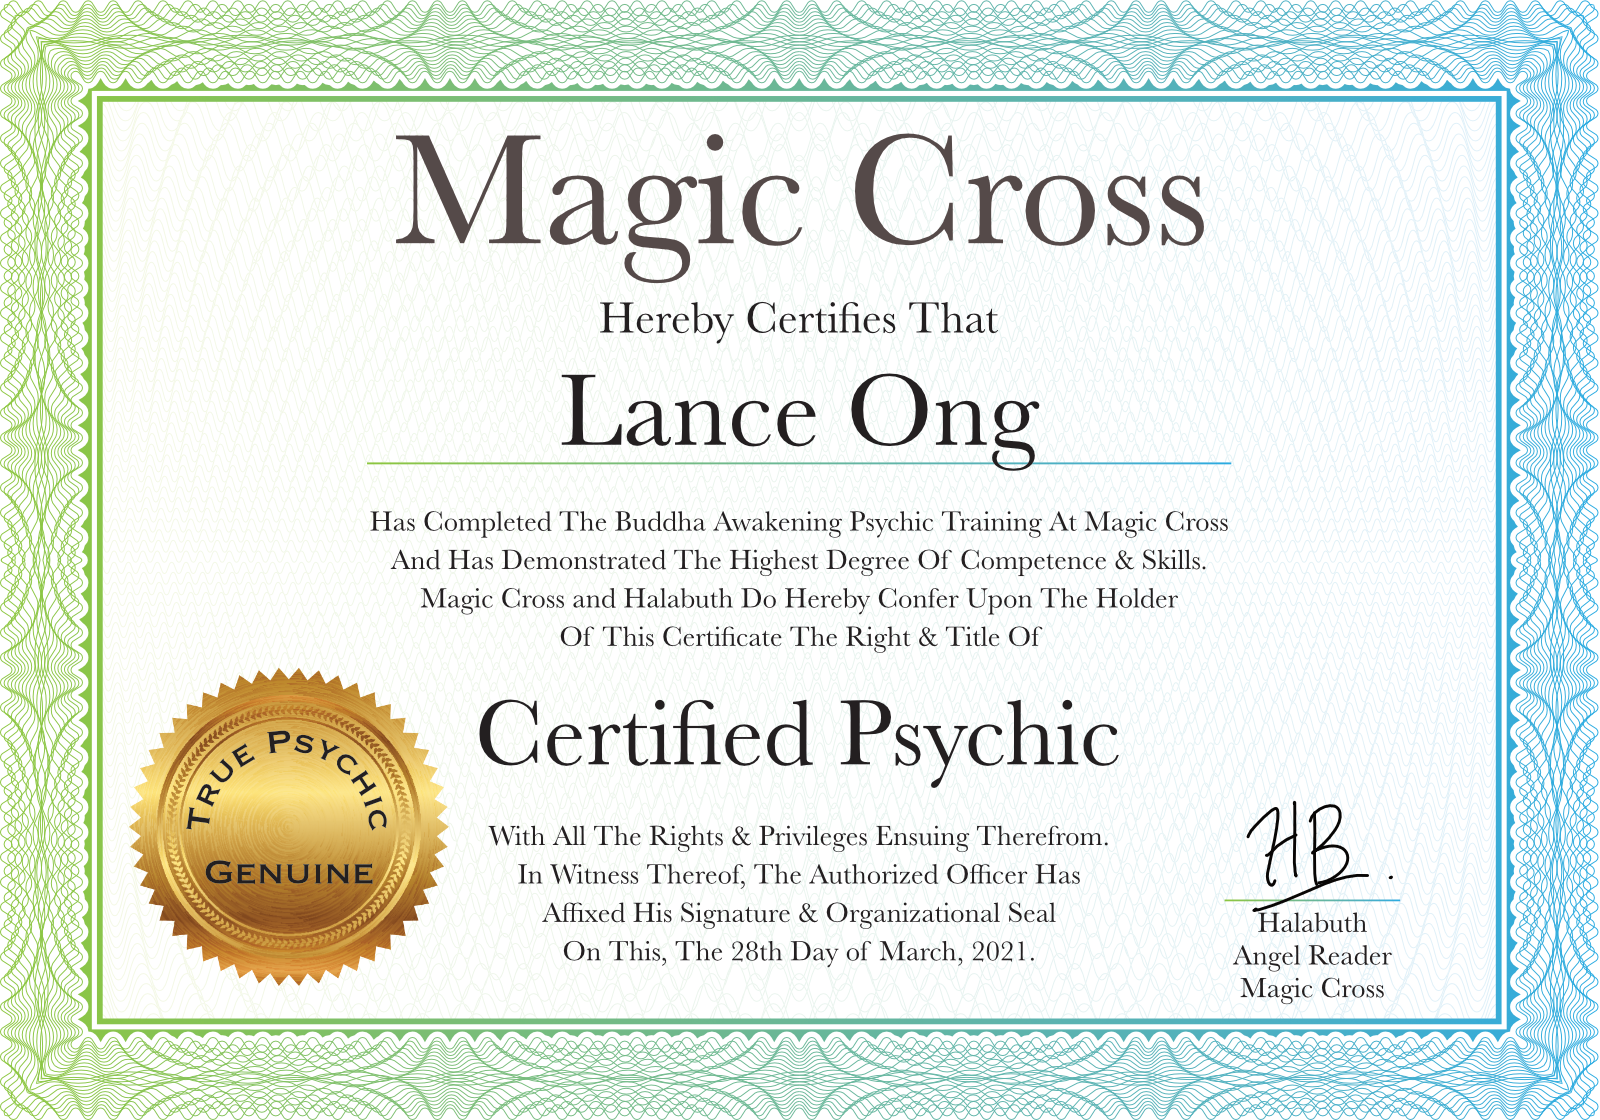 Lance Ong Certified Psychic